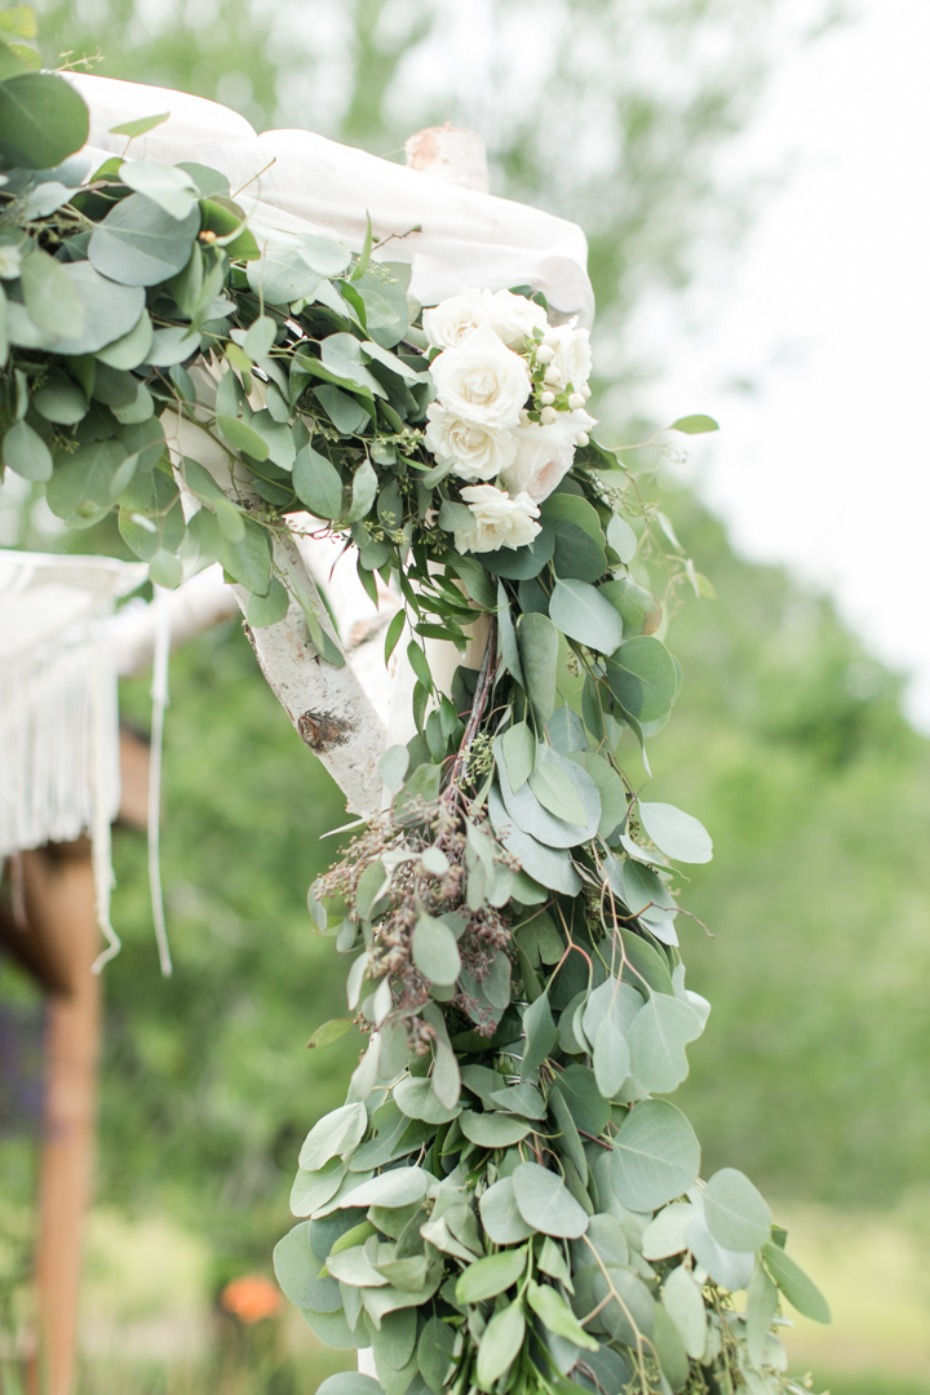 Eucalyptus and white flowers